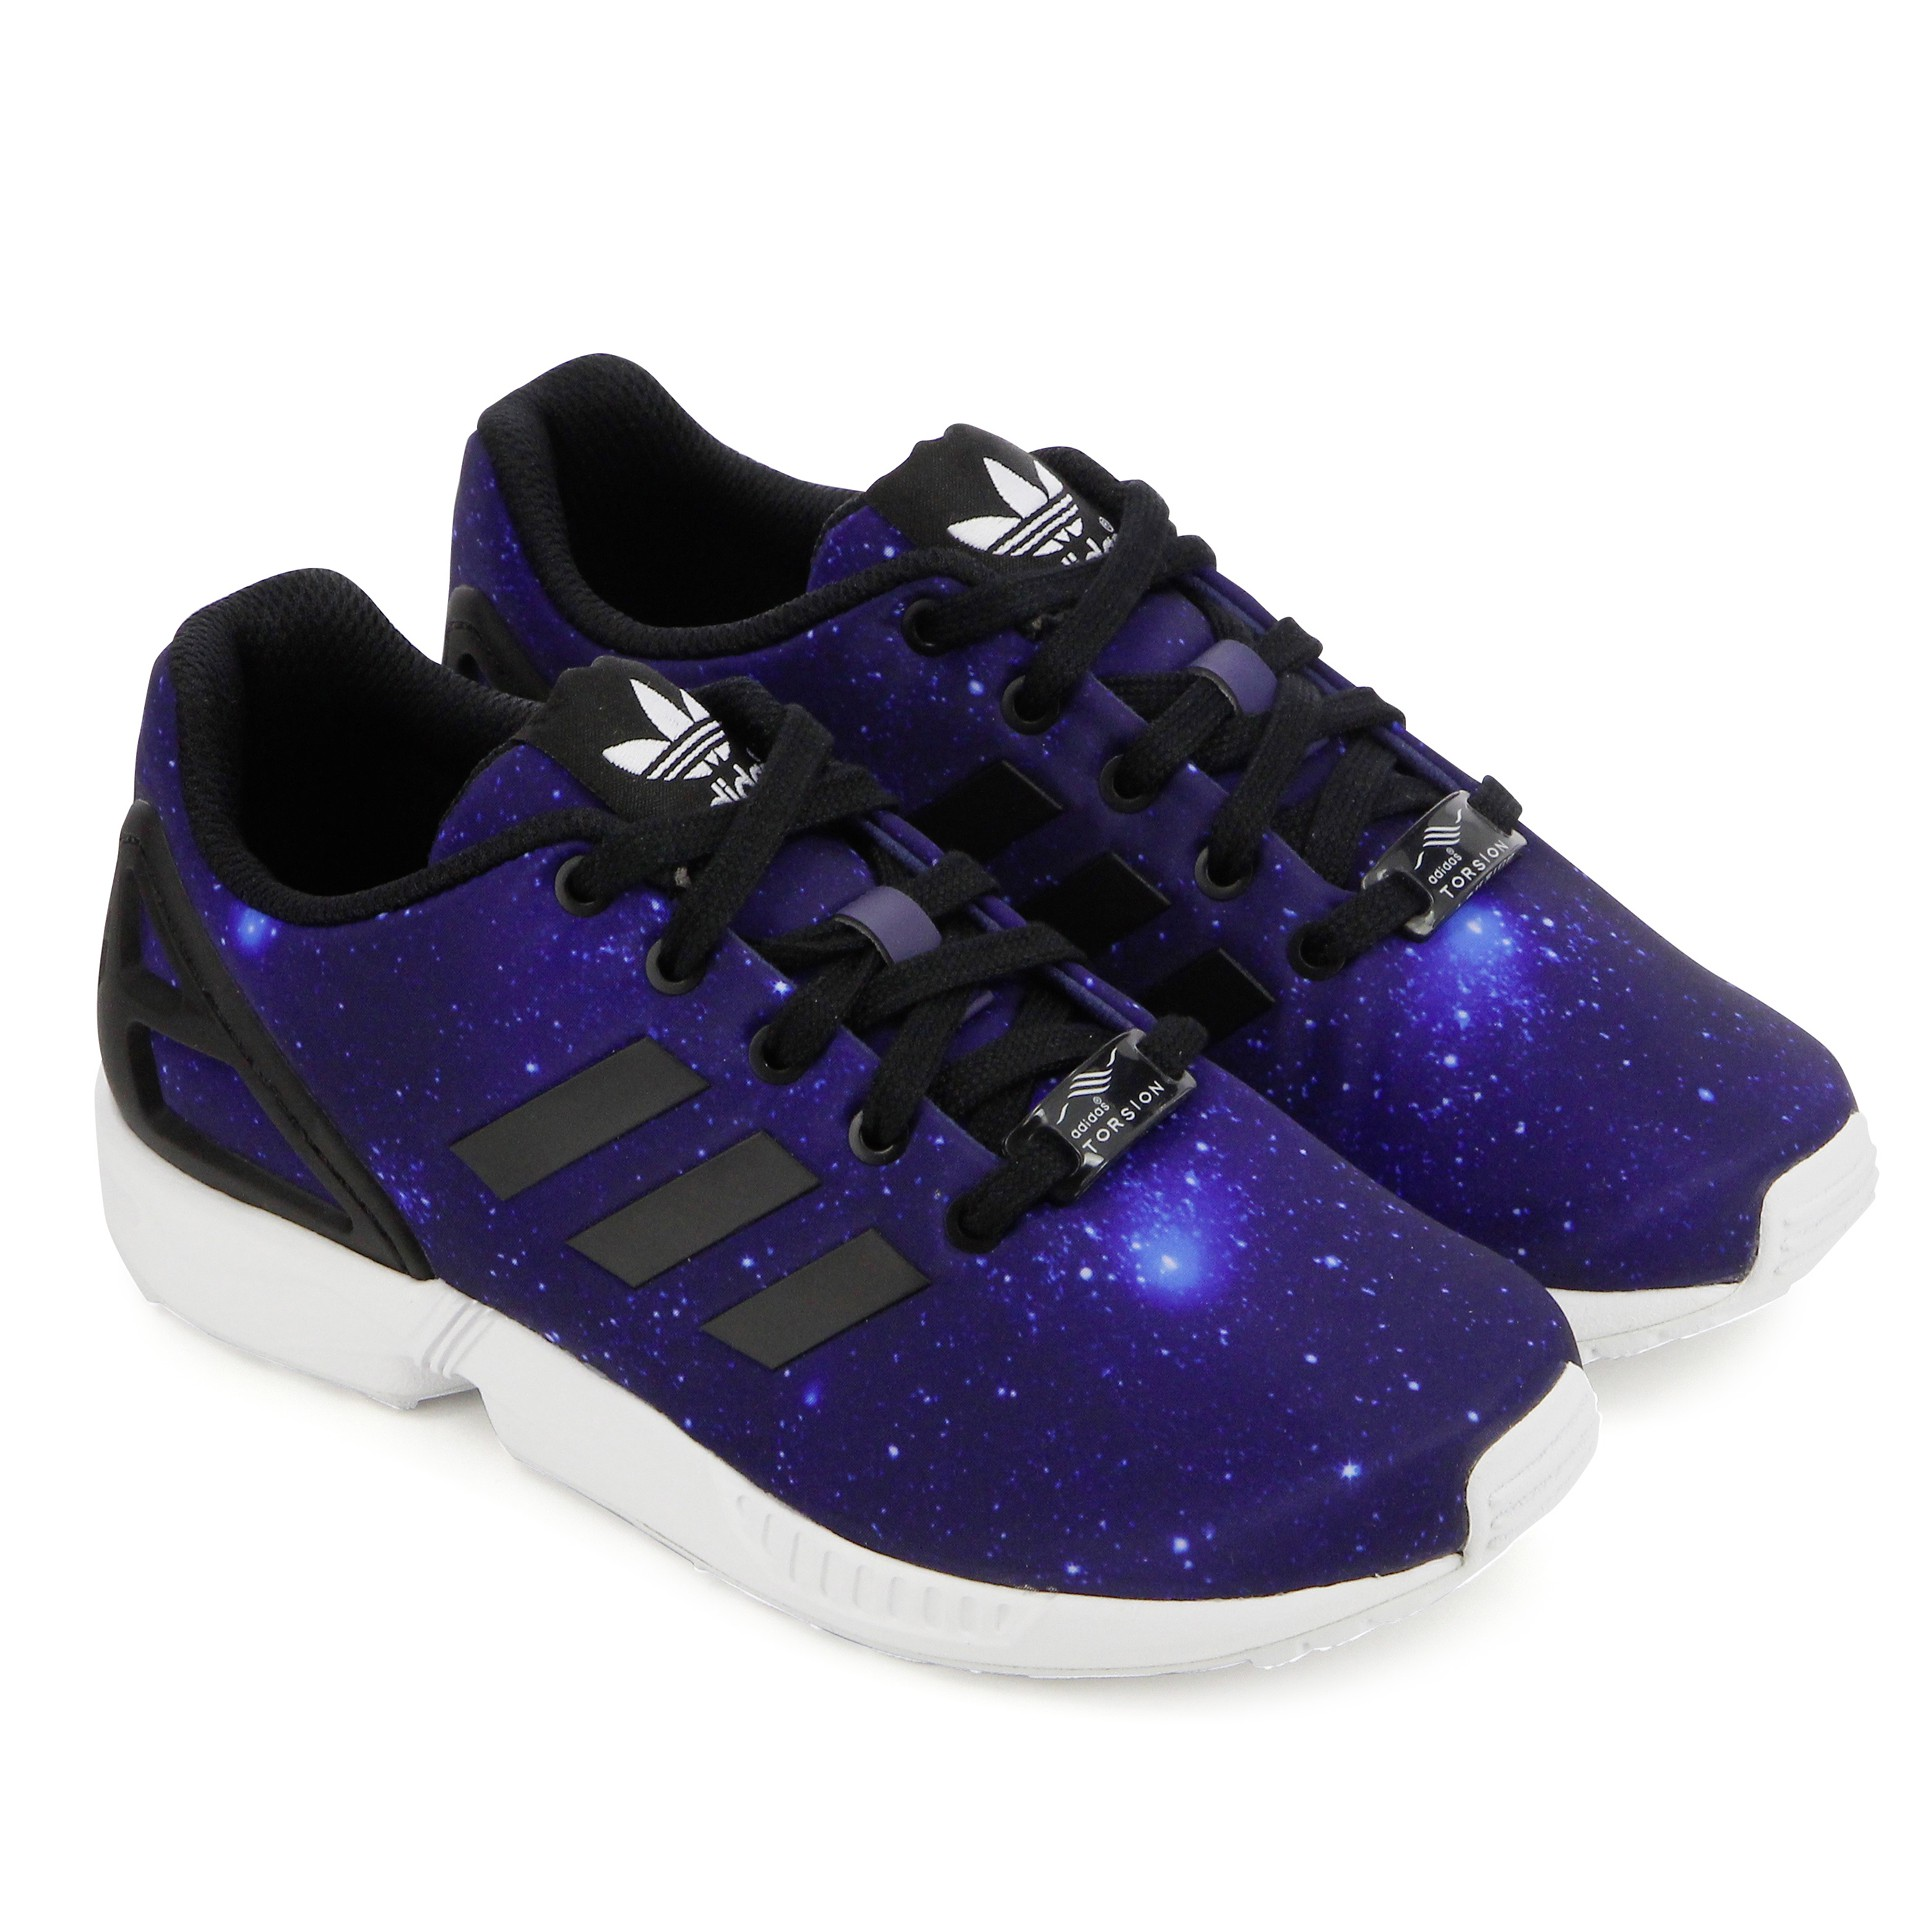 finest selection 44a54 884a2 adidas zx flux homme galaxy,adidas zx flux galaxy bleu homme